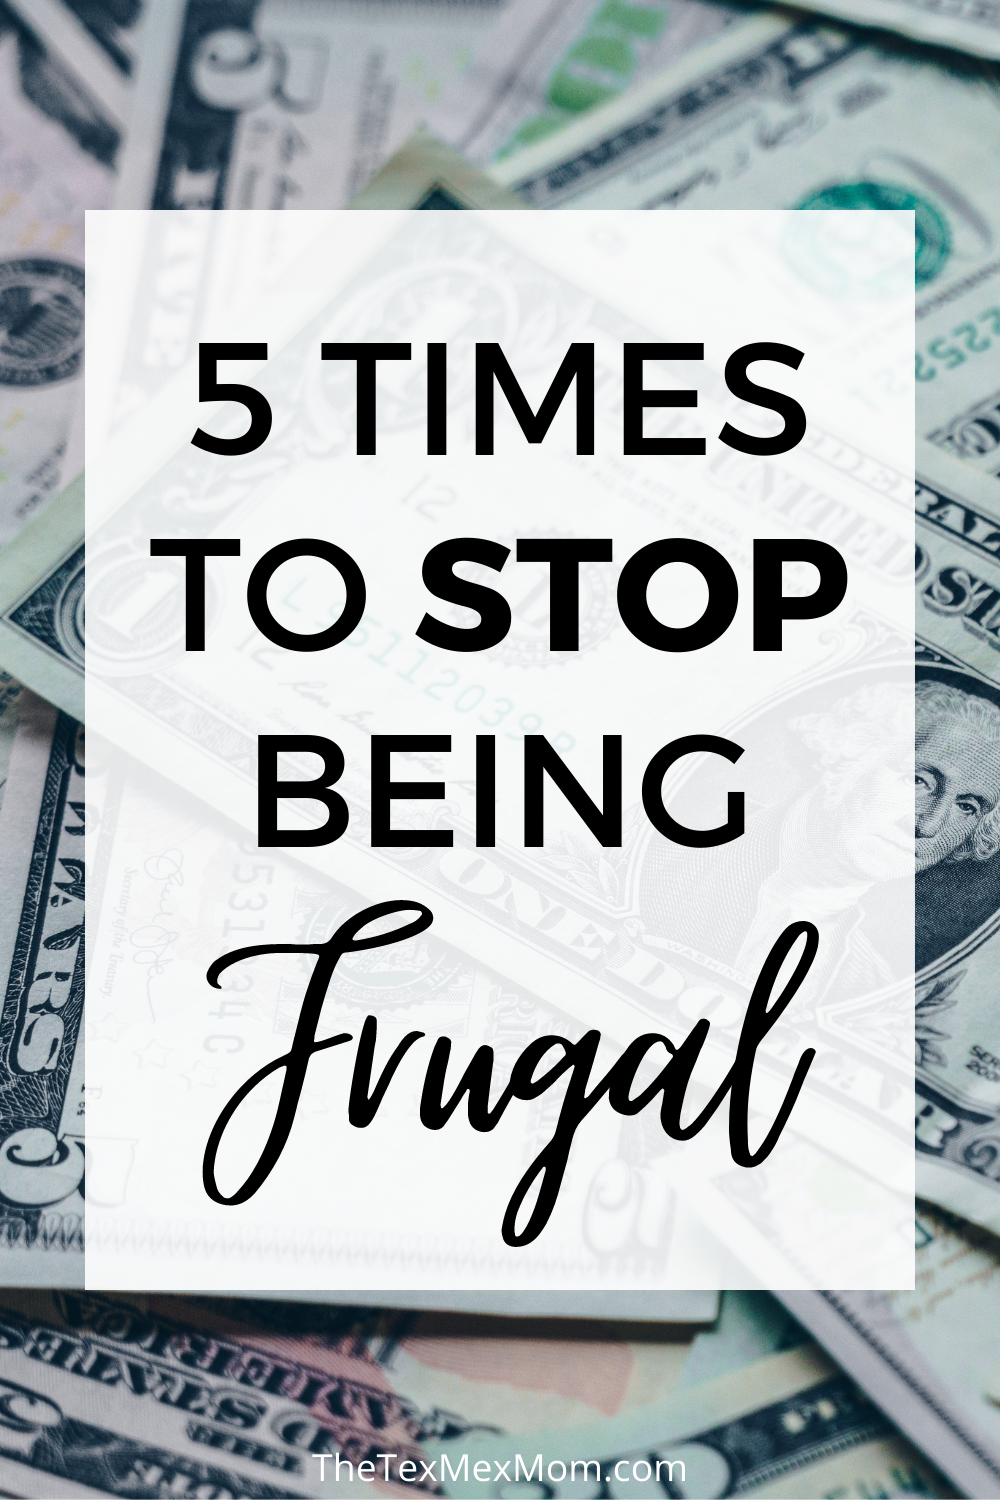 5 times to stop being frugal (text over background of dollar bills)